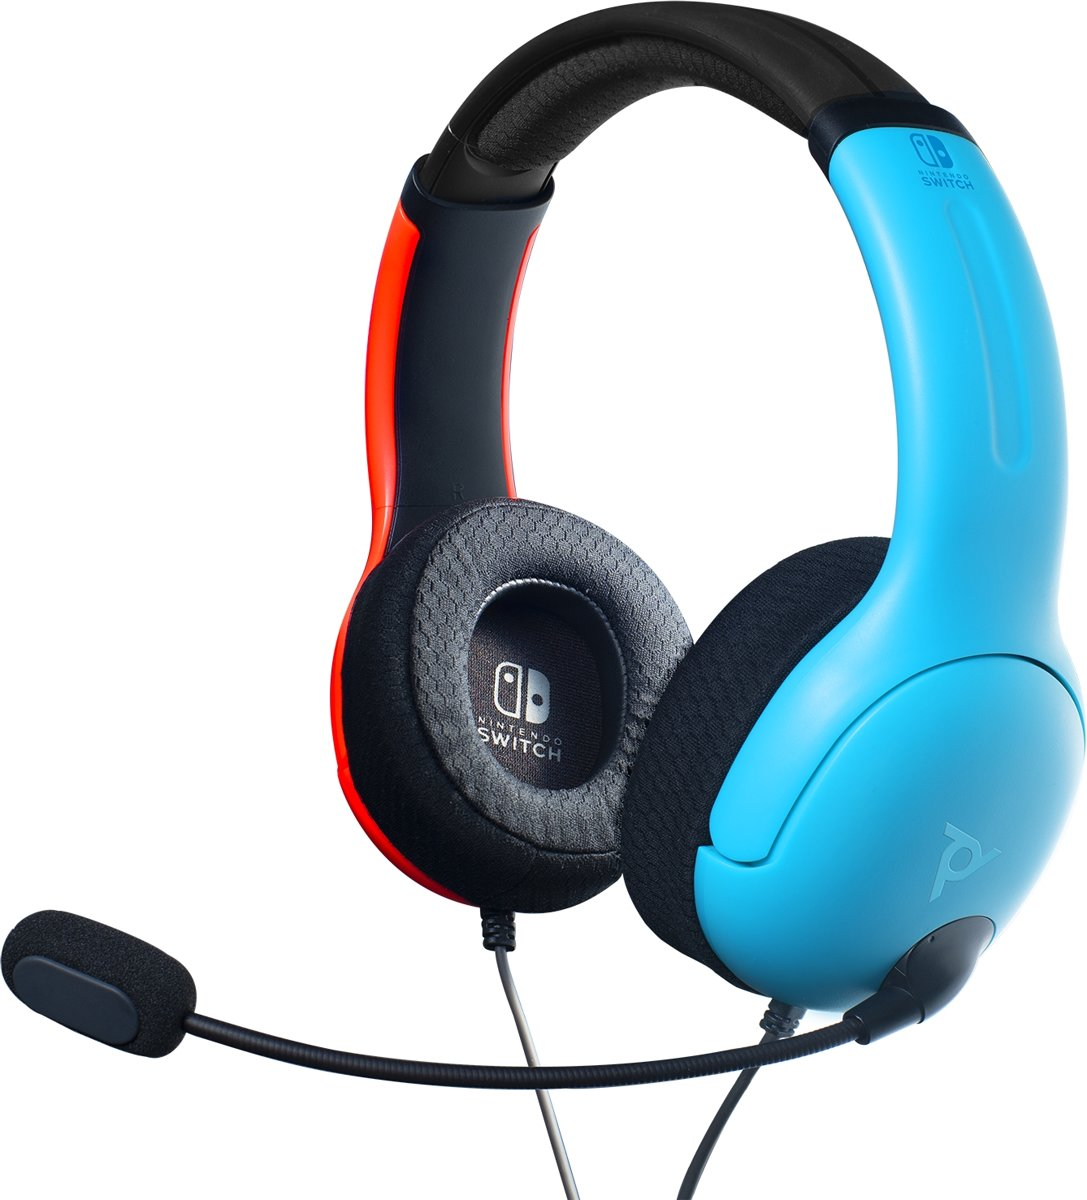 Afterglow LVL40 Stereo Gaming Headset - Nintendo Switch - Blauw Rood kopen